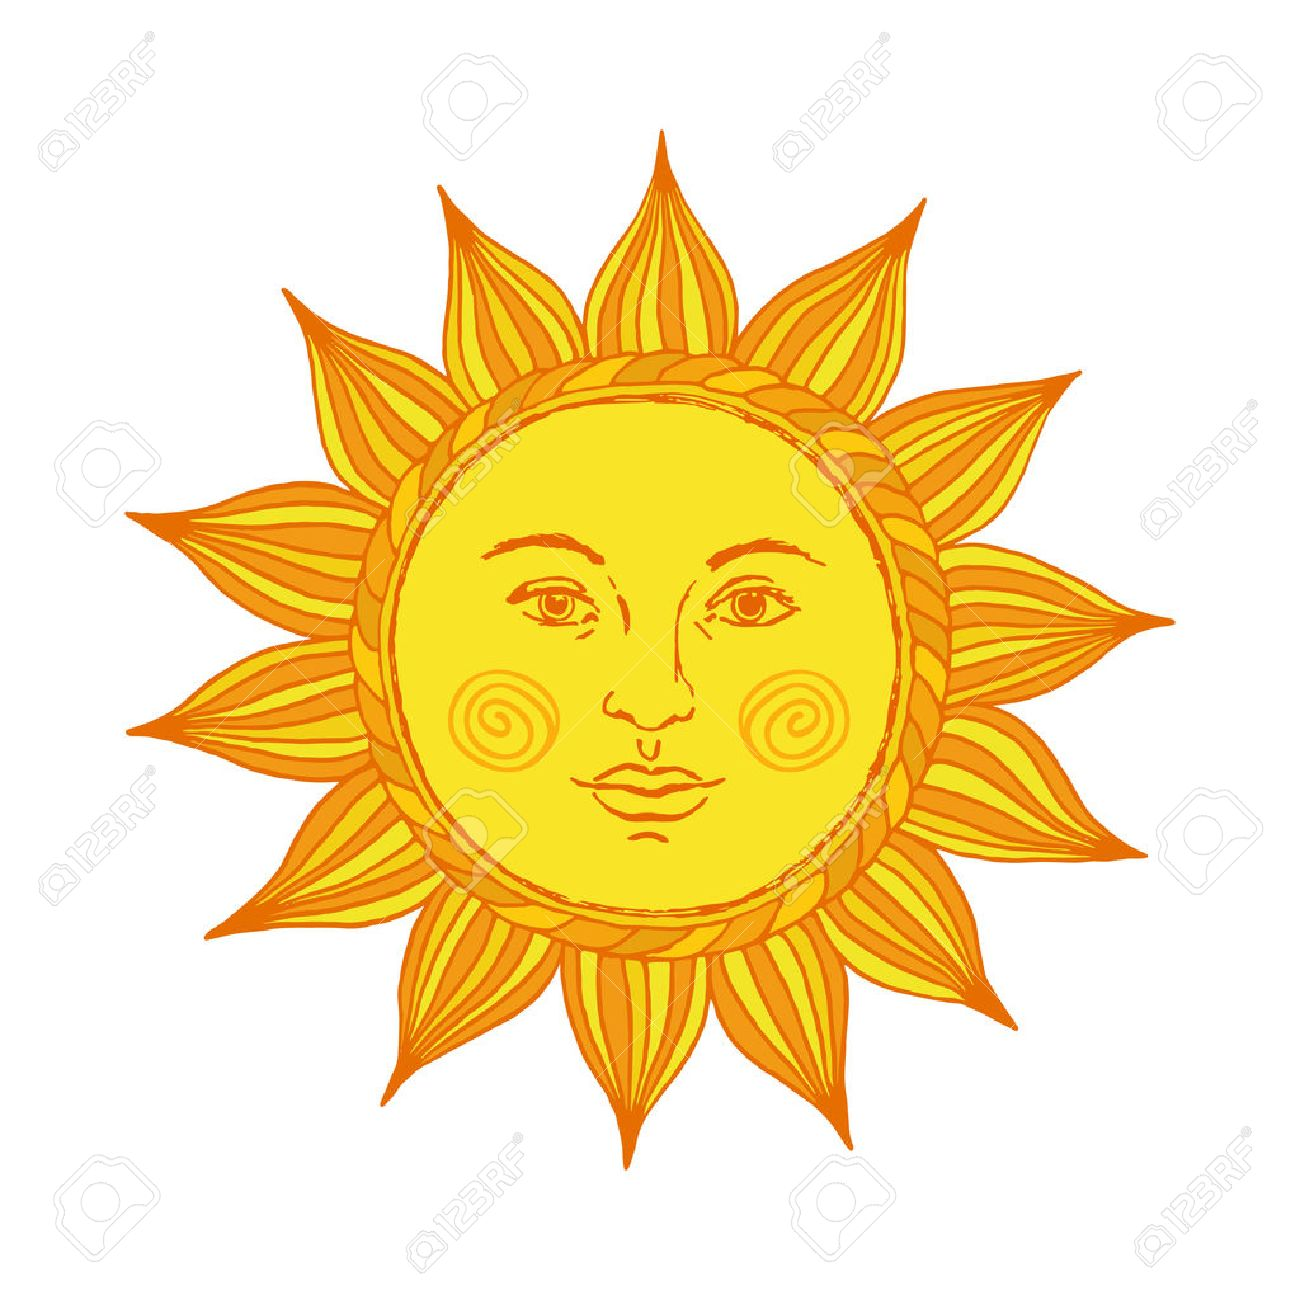 hand drawn sun with face and eyes alchemy medieval occult rh 123rf com sun vector art sun vector optics